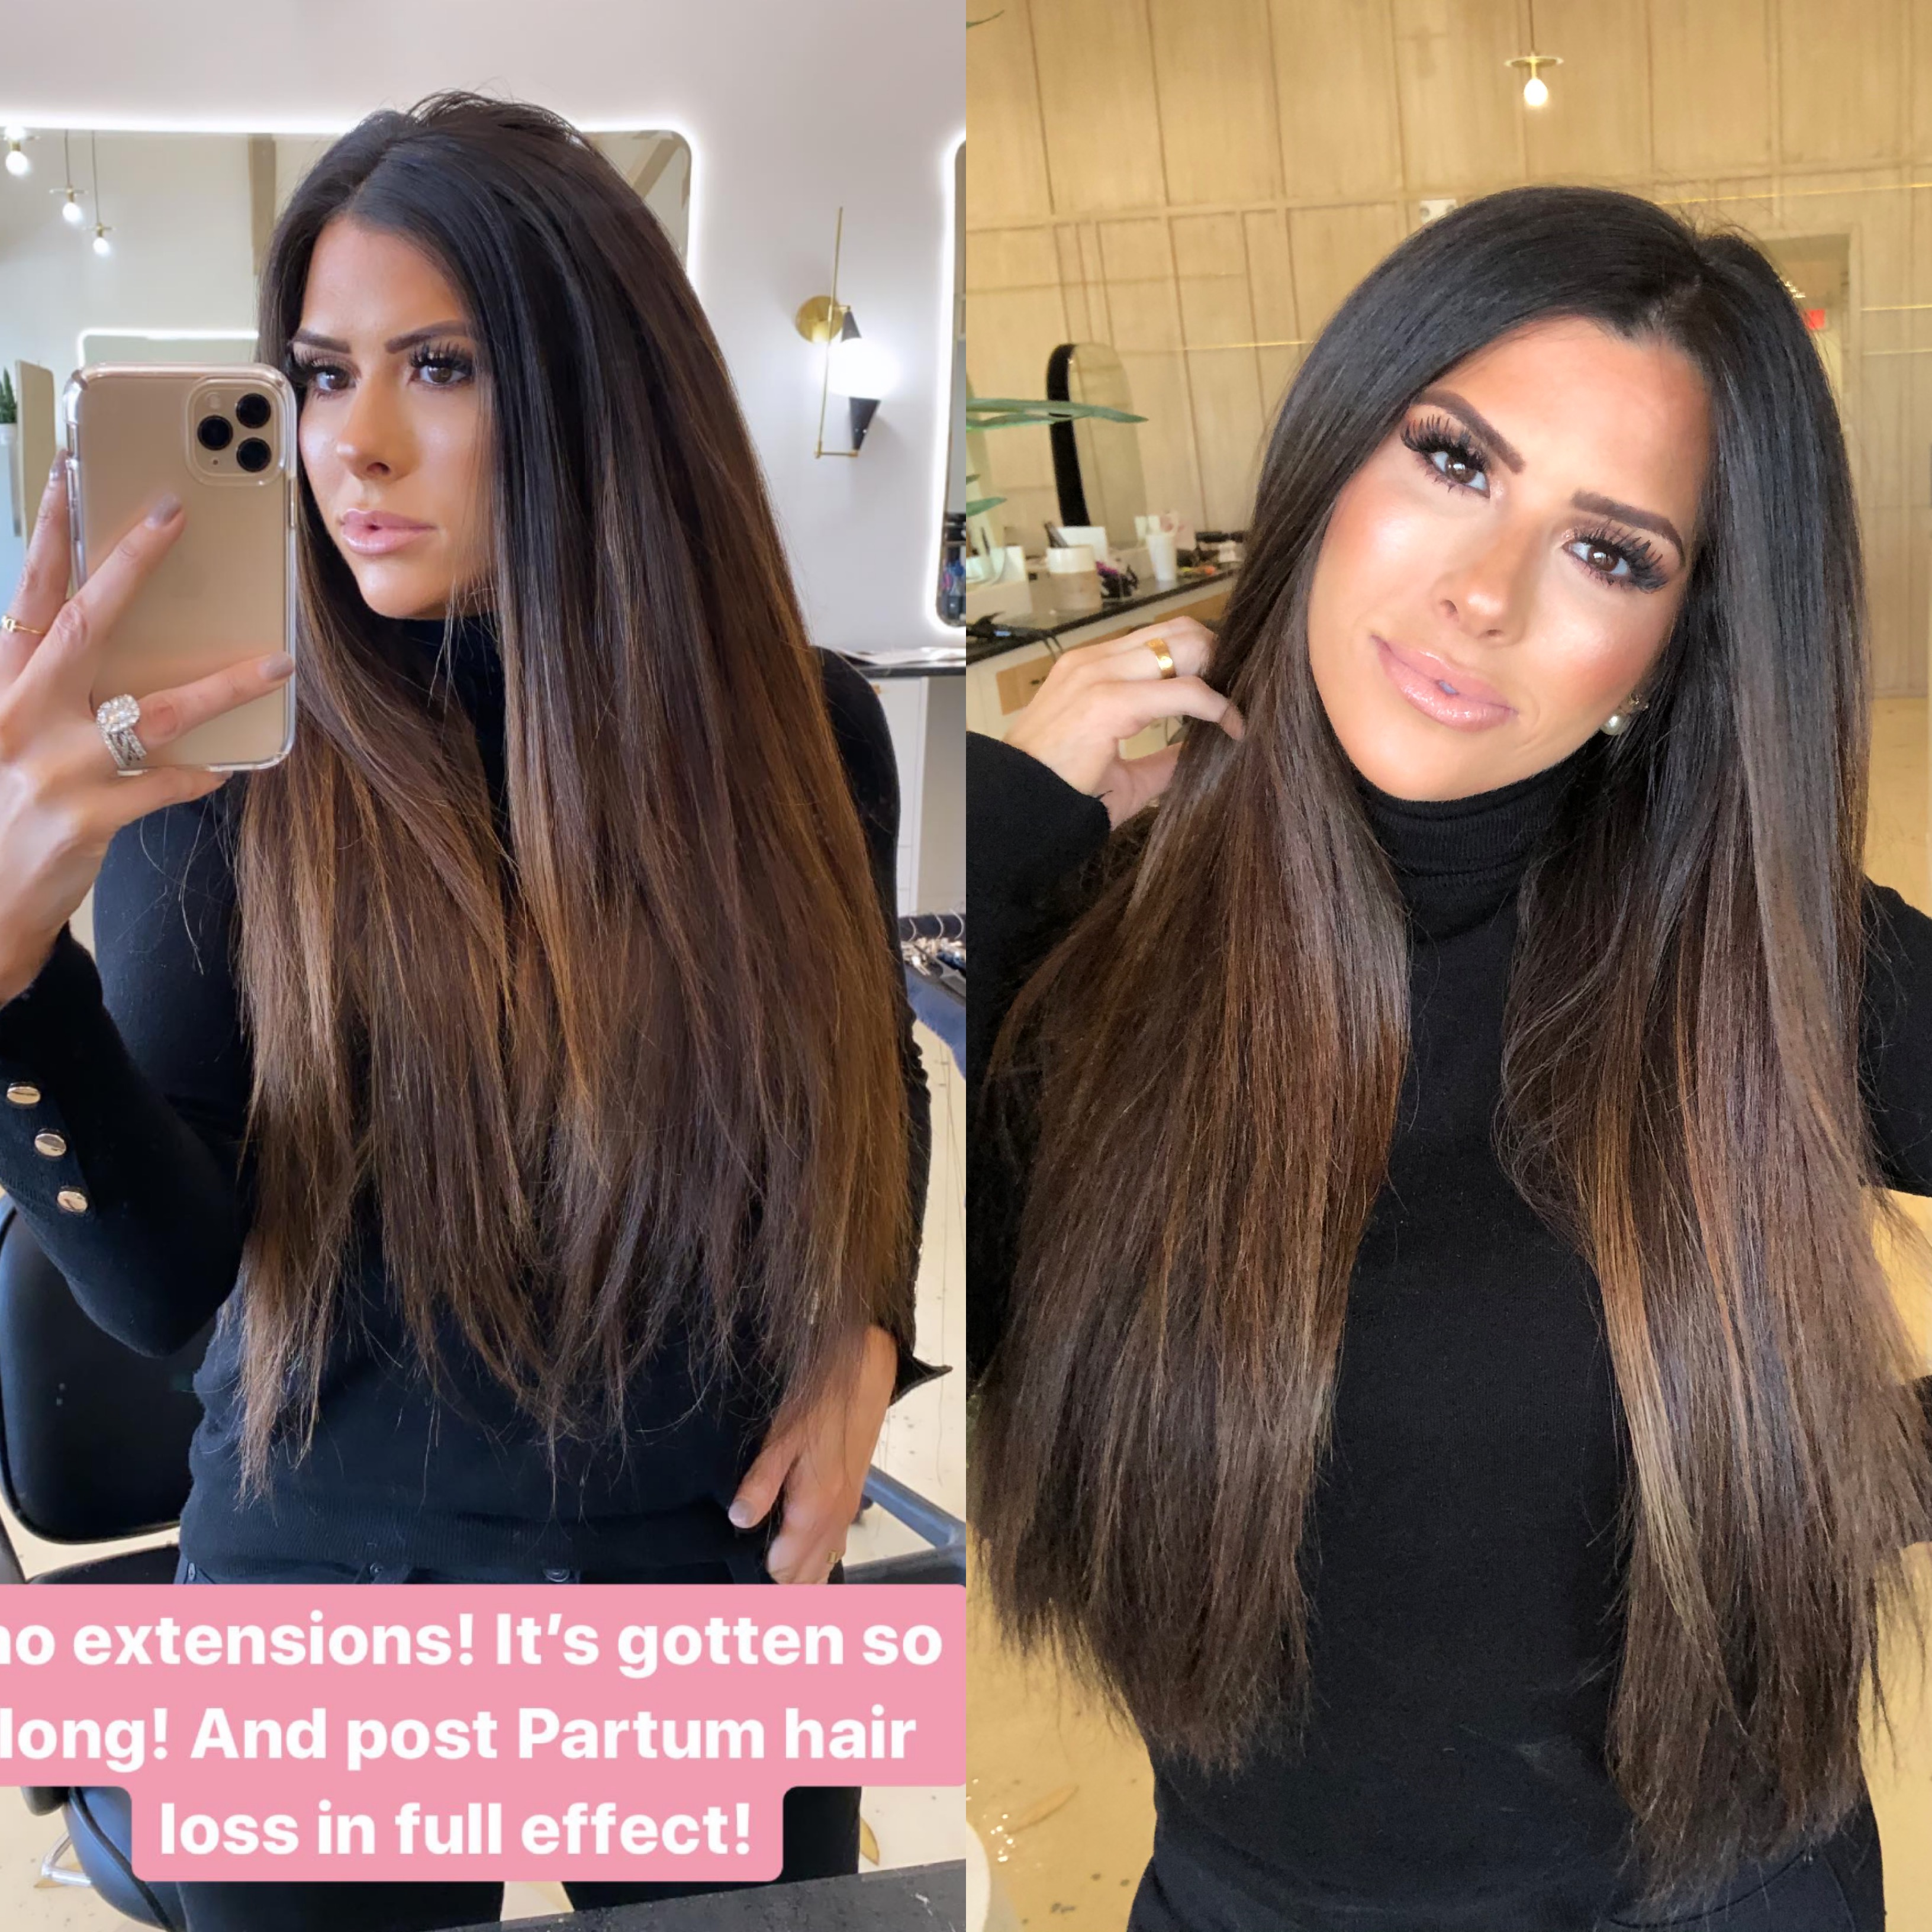 before and after hair extensions hair by chrissy ,emily gemma | BEST HAIR PRODUCTS FOR 2019💁🏻‍♀️ || PART 1 by popular US beauty blog, The Sweetest Thing: image of a woman with brunette hair extensions.